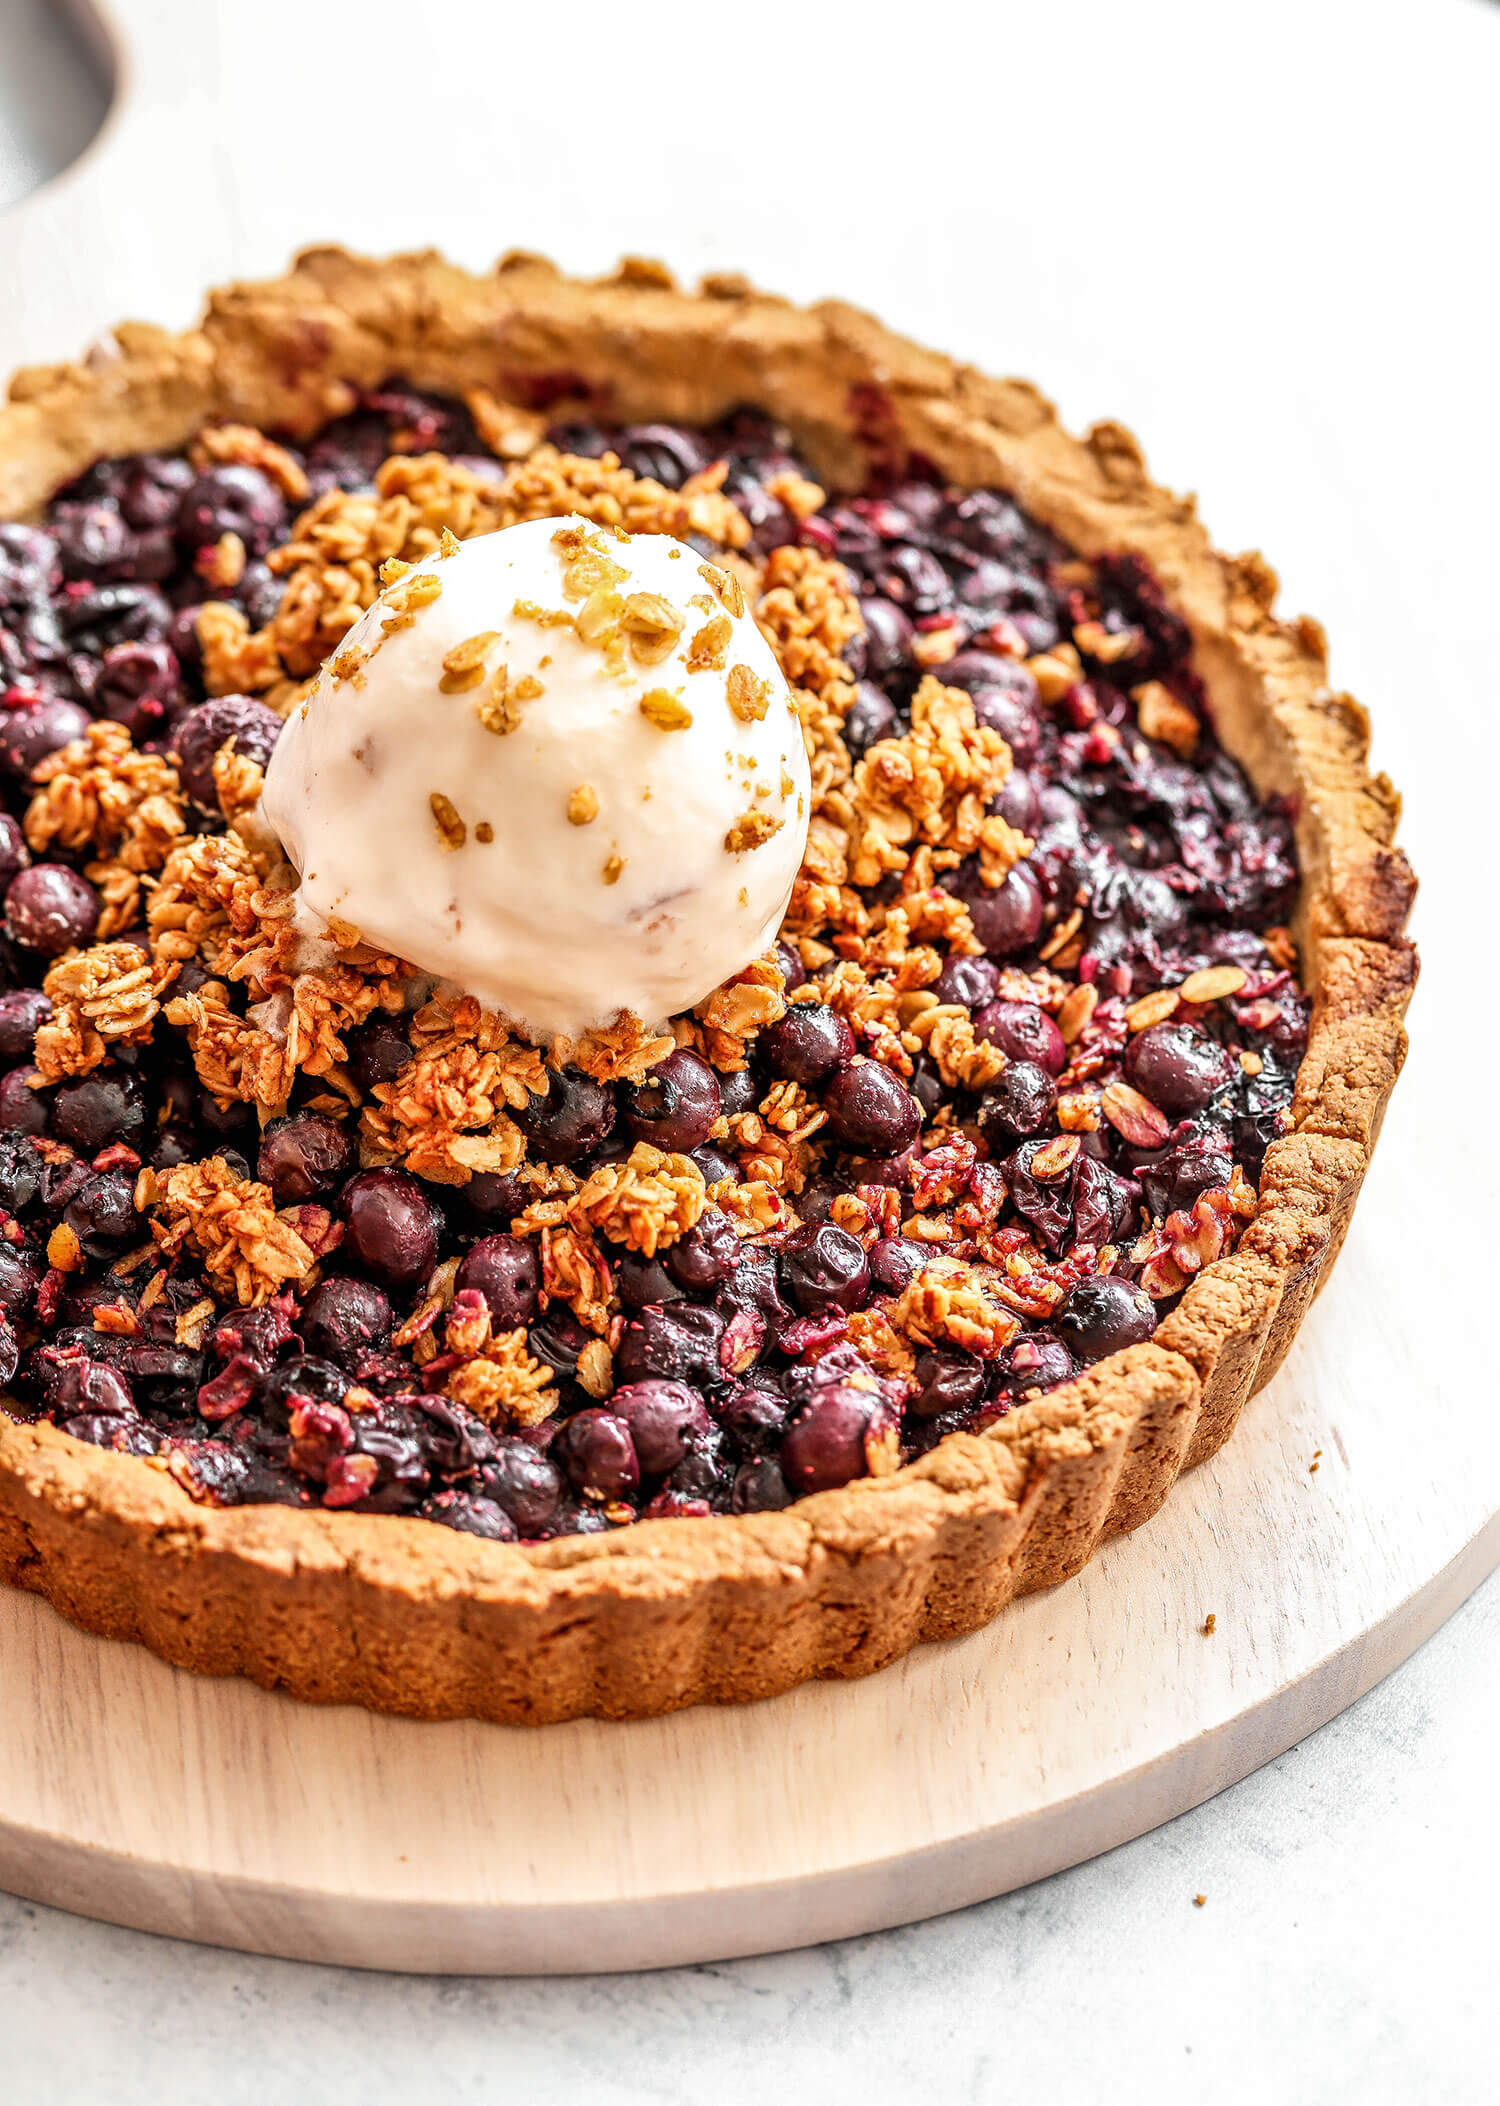 Vegan Blueberry Crisp Tart